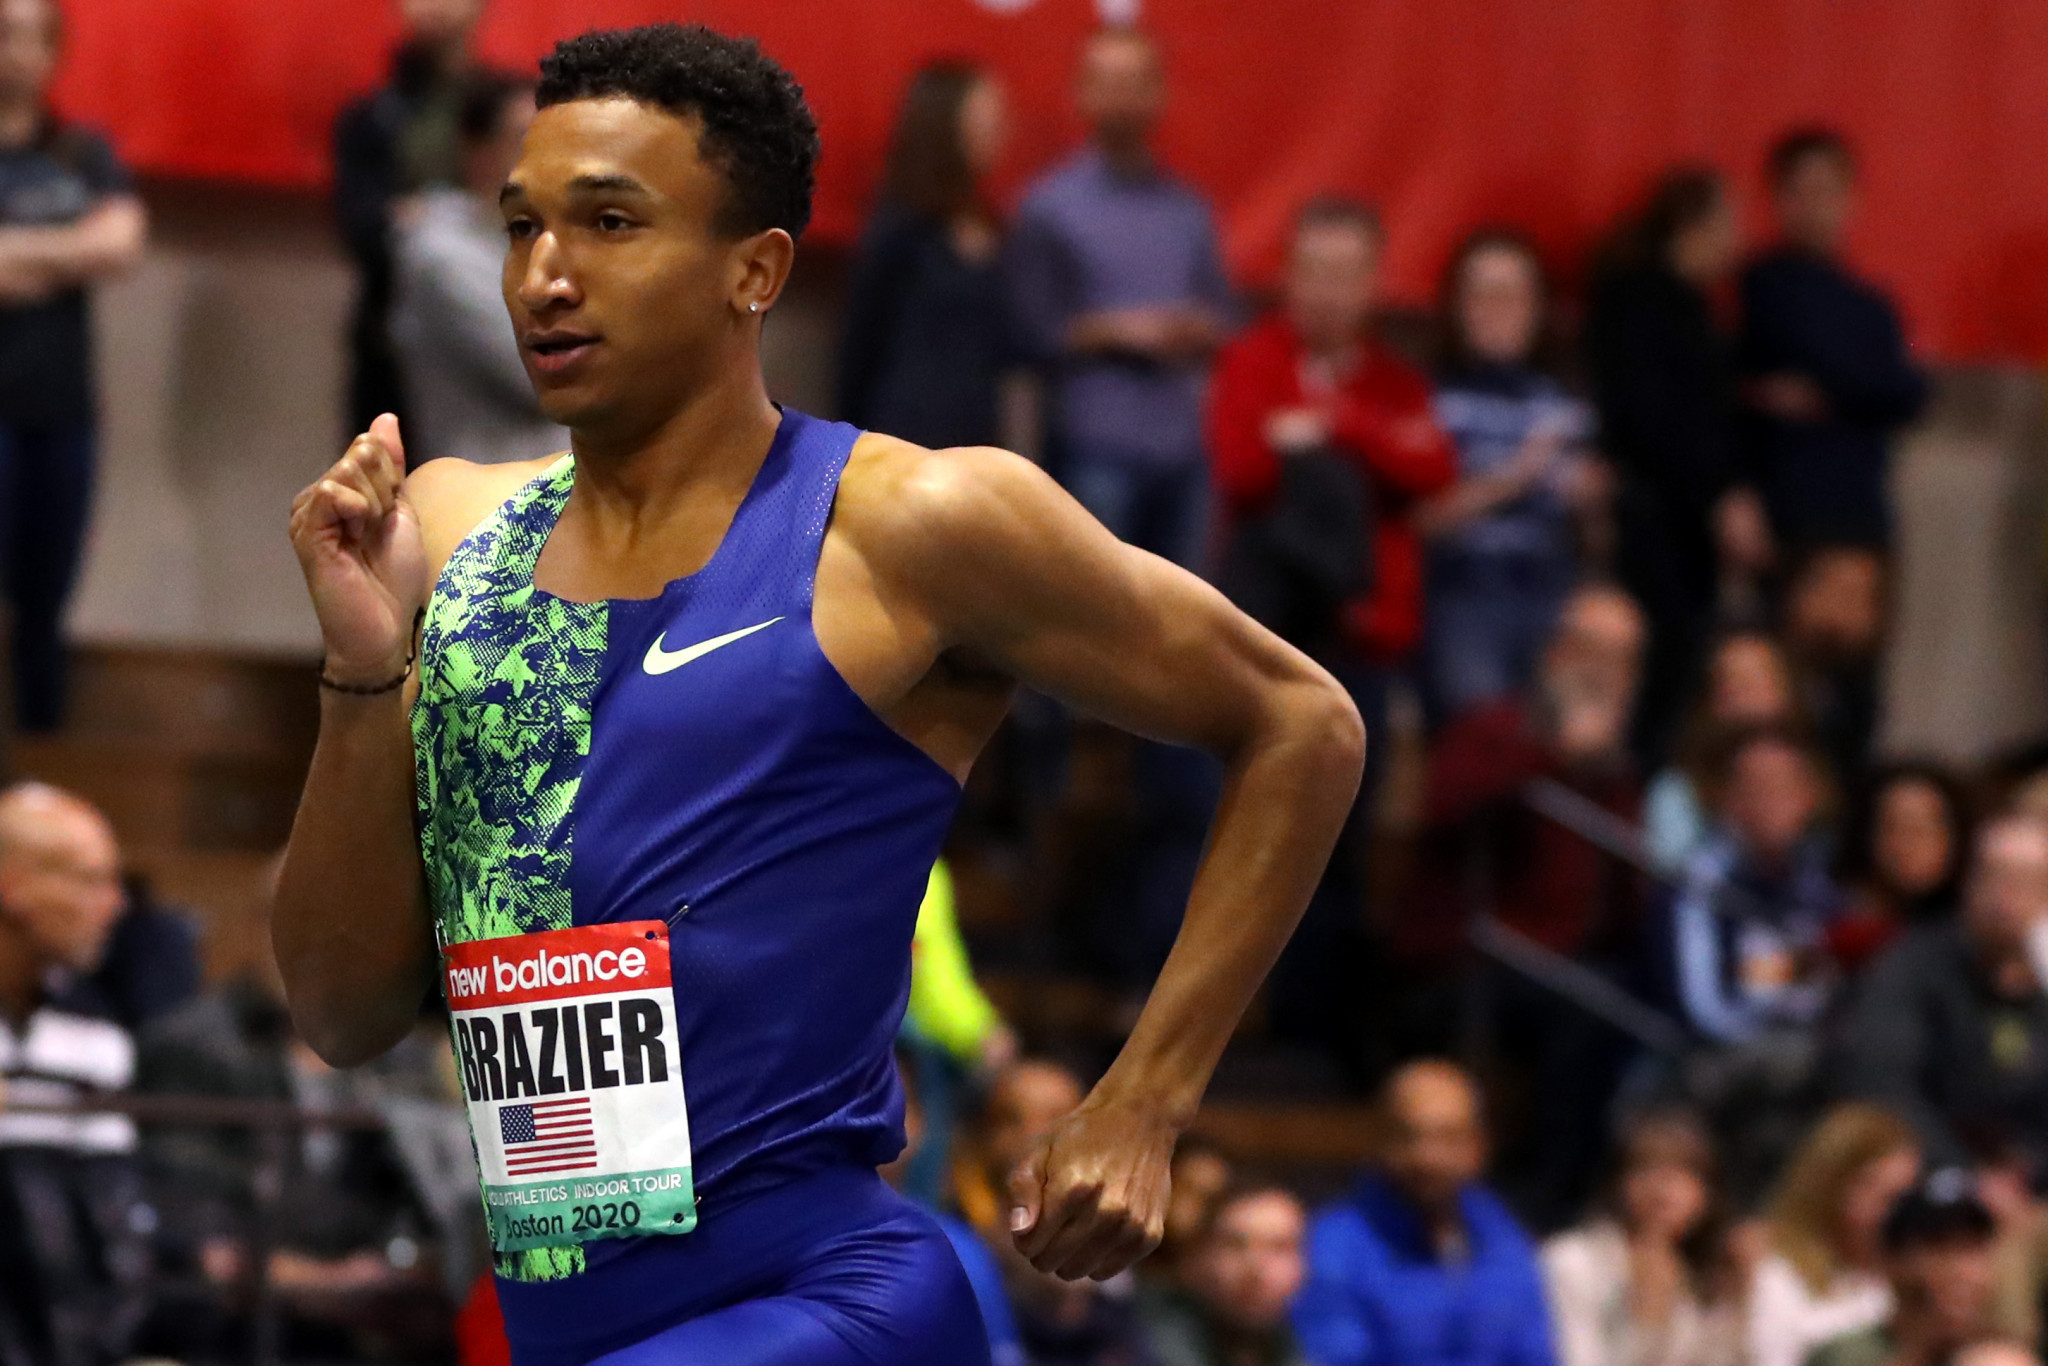 US world champions Brazier and Ali open season with wins at World Athletics Indoor Tour event in Boston